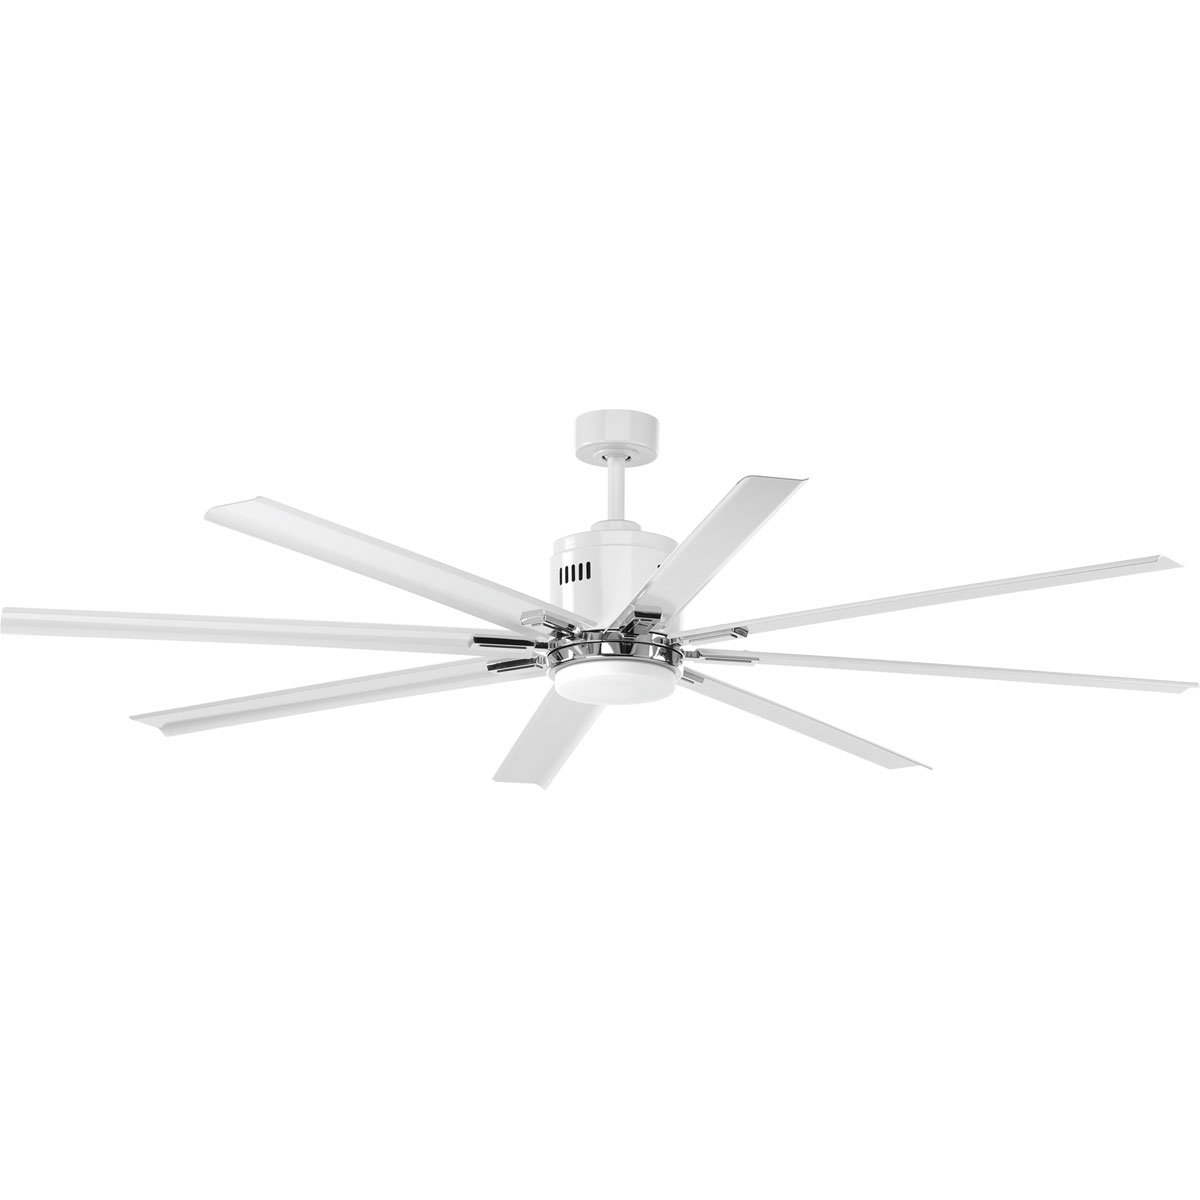 8 Blade Ceiling Fan (View 13 of 20)